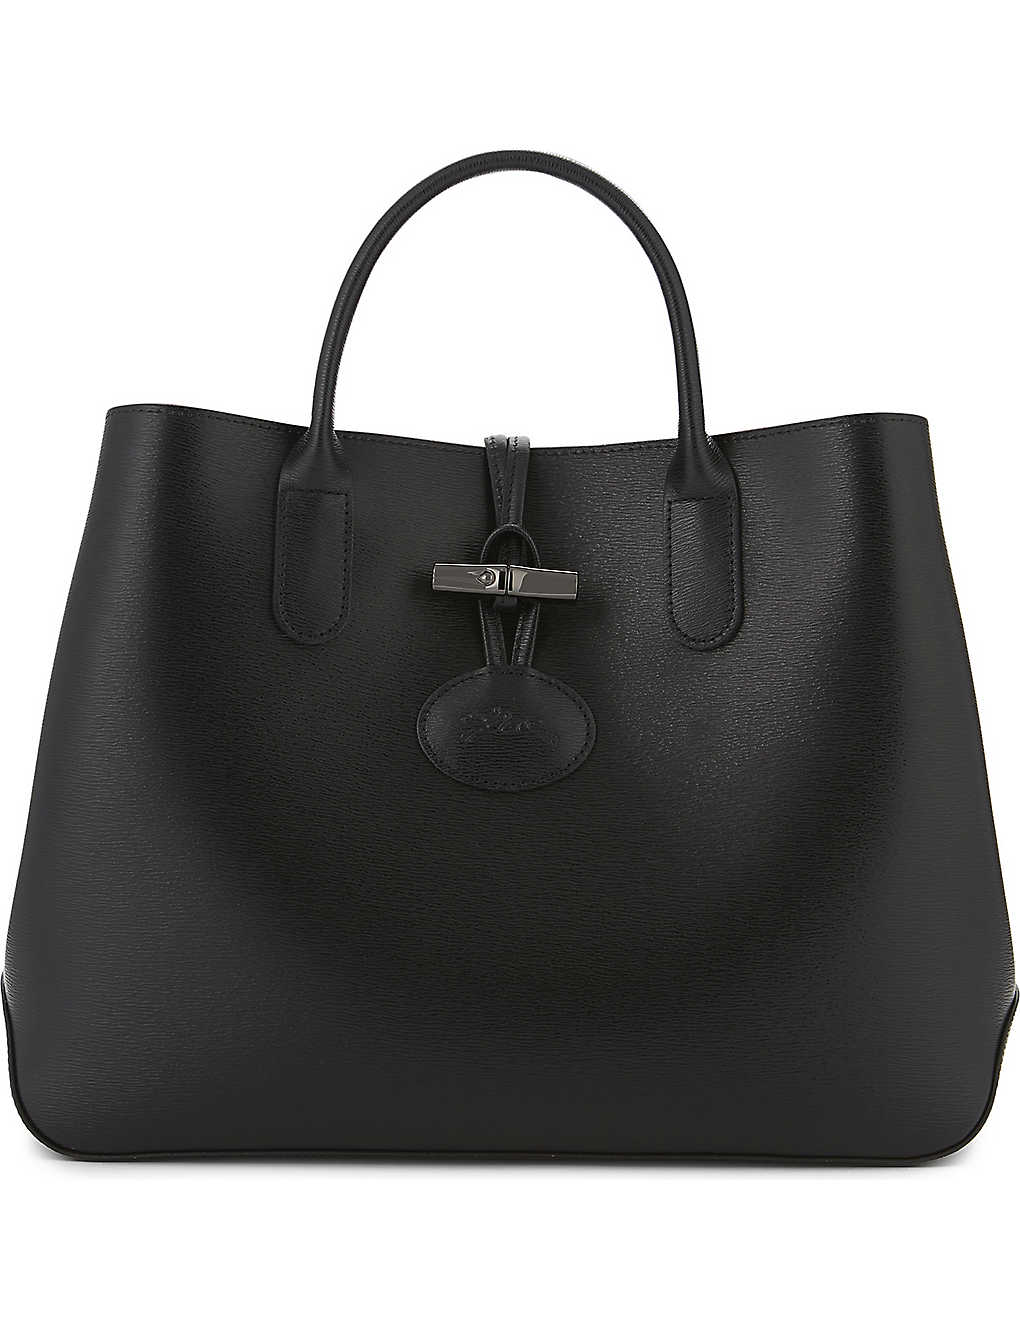 56671cb2706 LONGCHAMP - Roseau leather tote | Selfridges.com